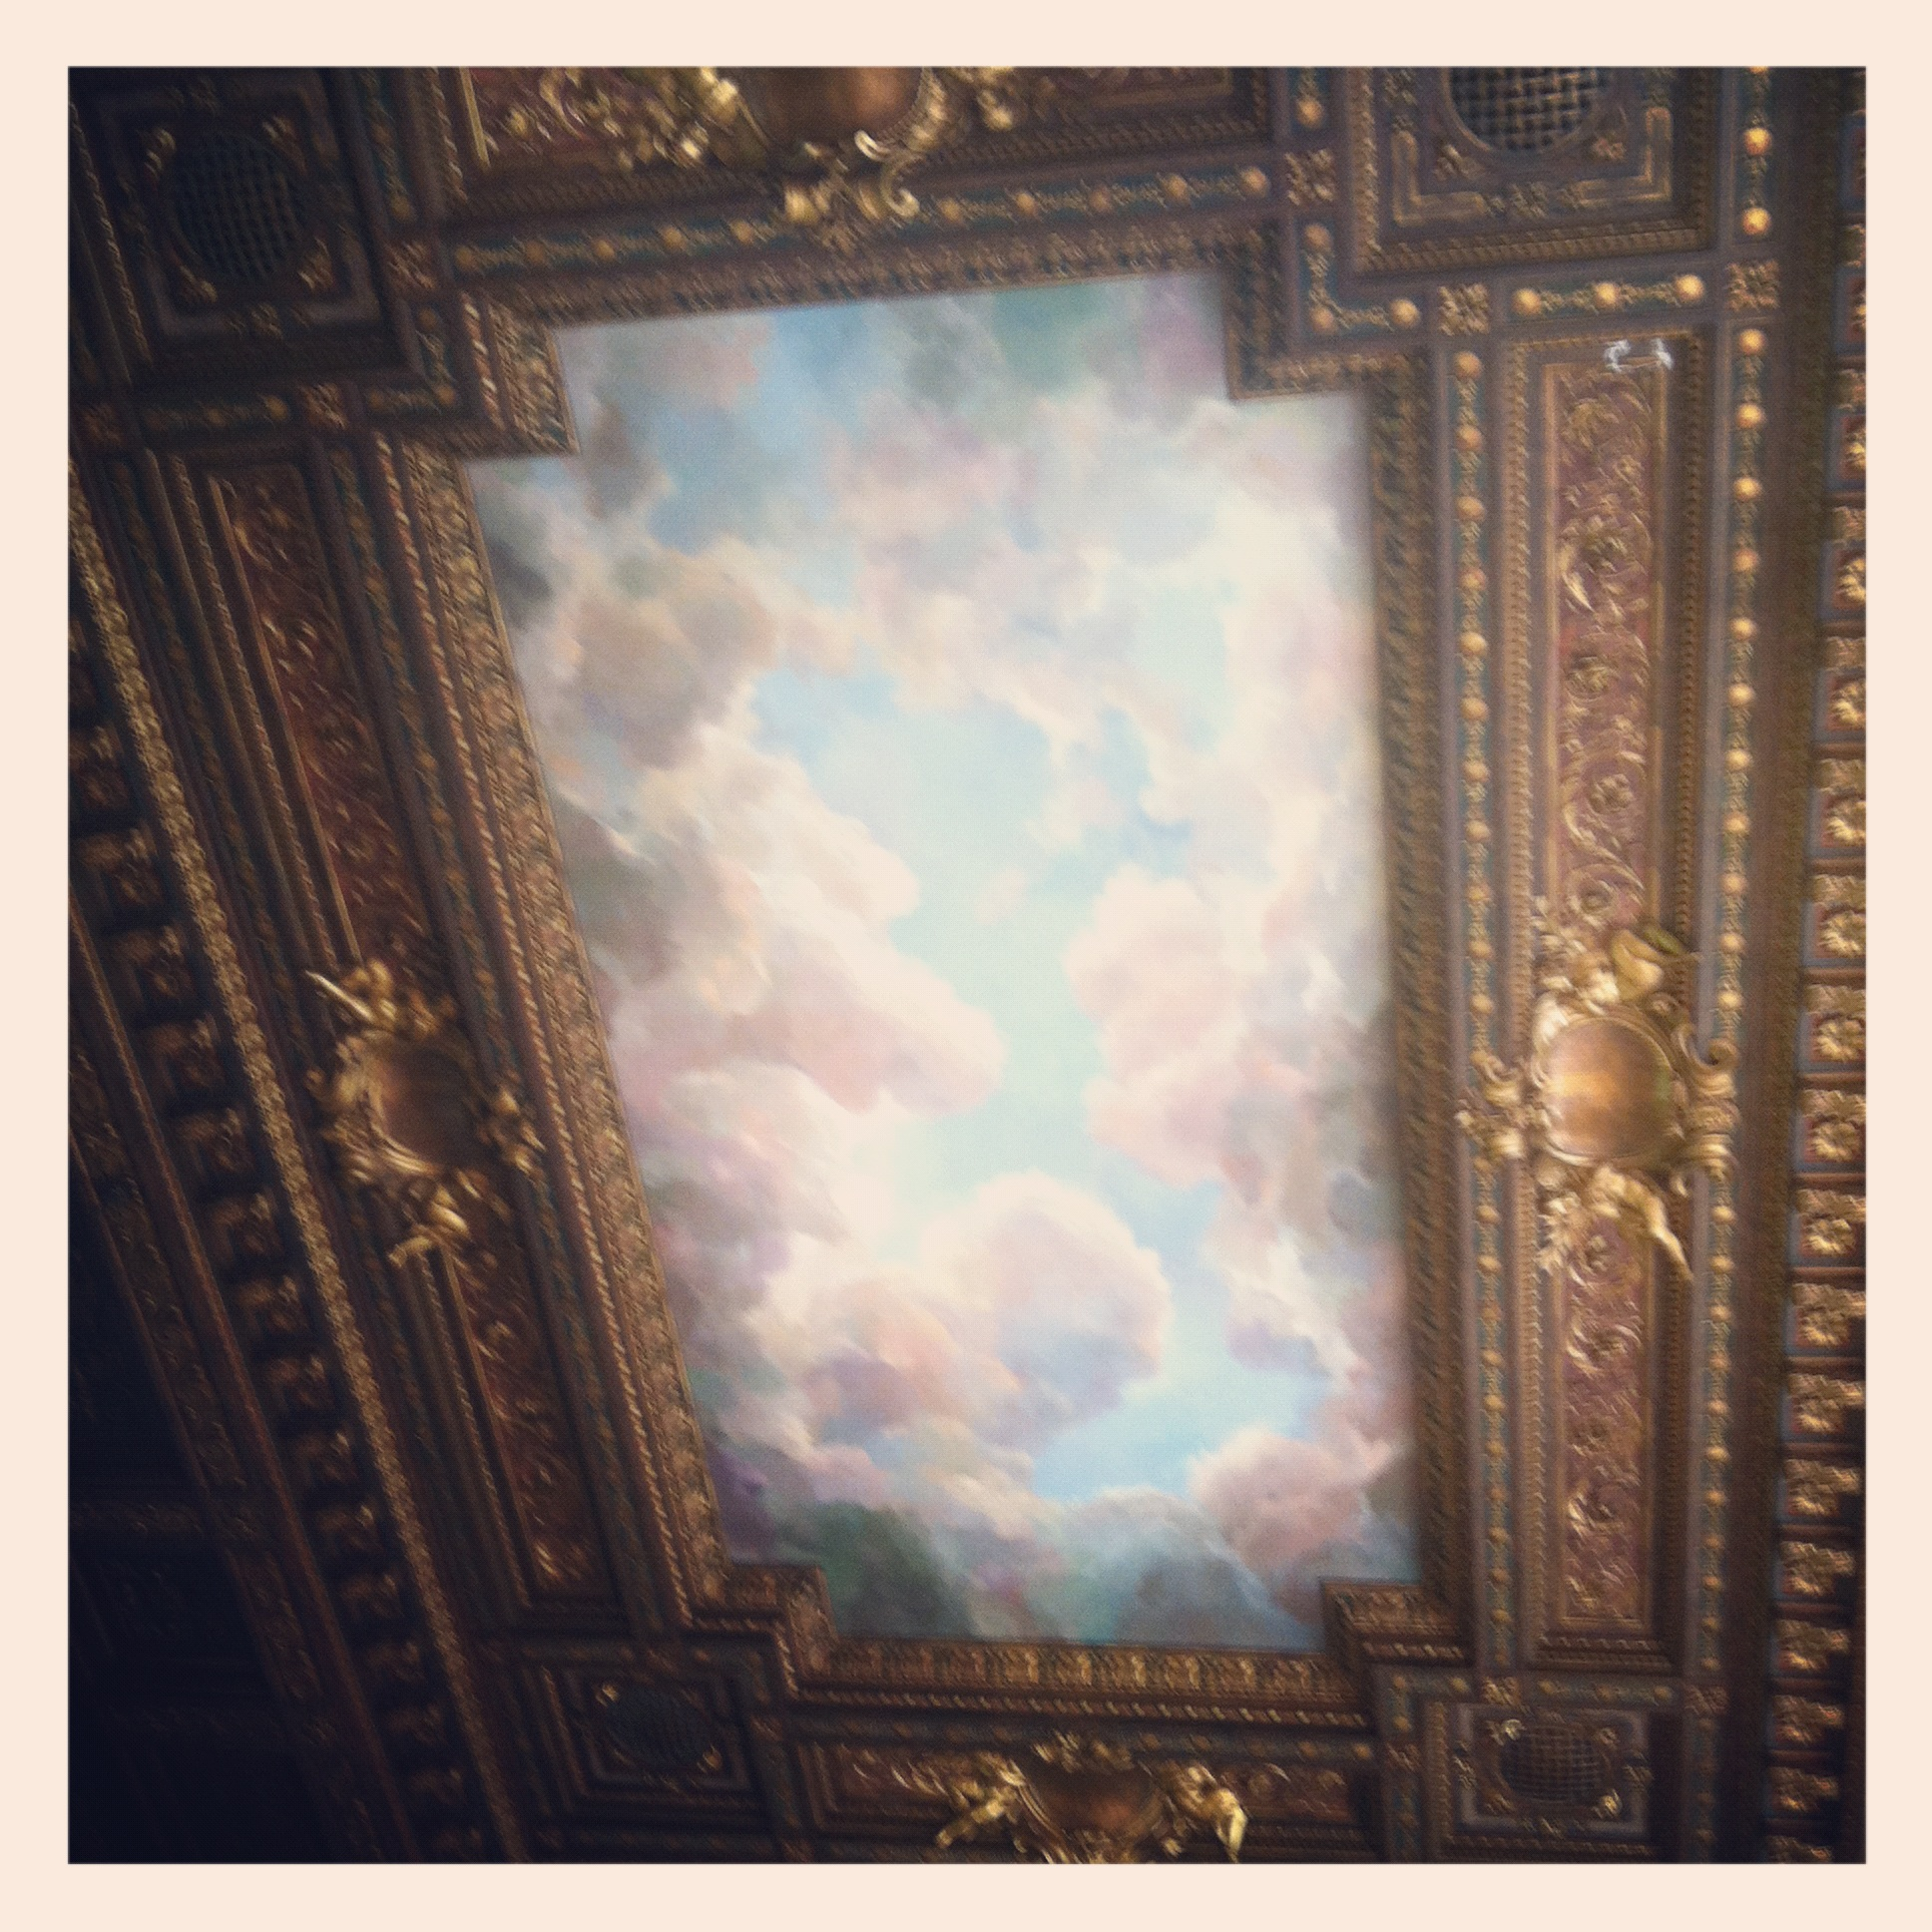 One of my favorite views in New York City: the ceiling in the Rose Reading Room, NYC Public Library.